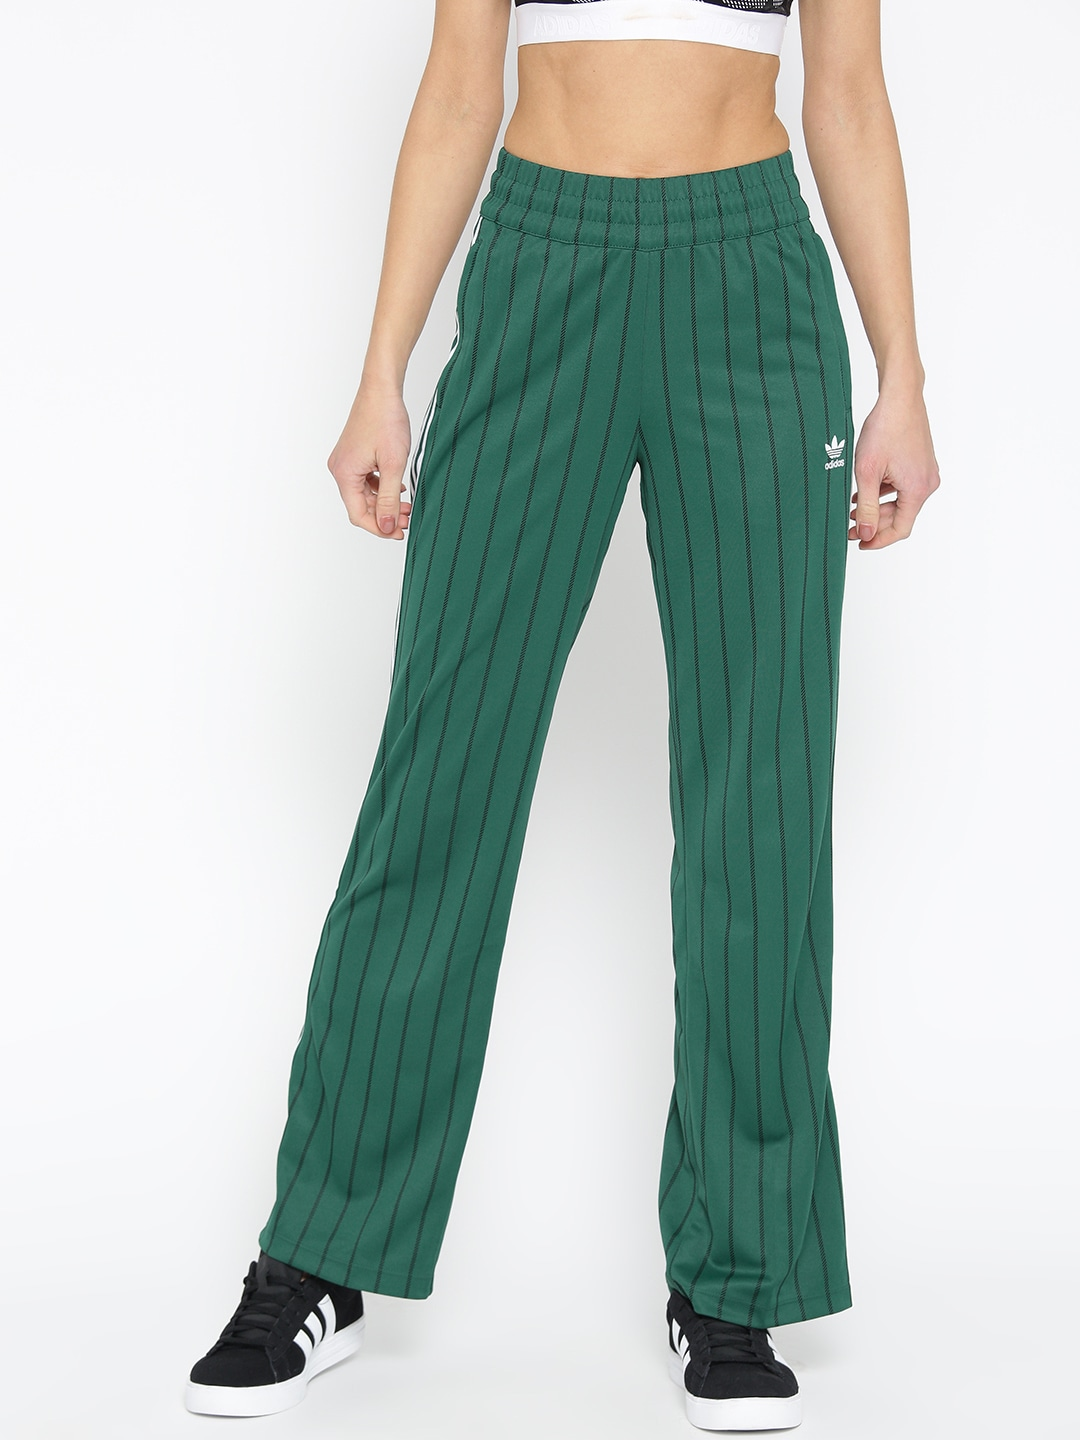 eeab98ffe5f4 Women Adidas Originals Track Pants Pants - Buy Women Adidas Originals Track  Pants Pants online in India